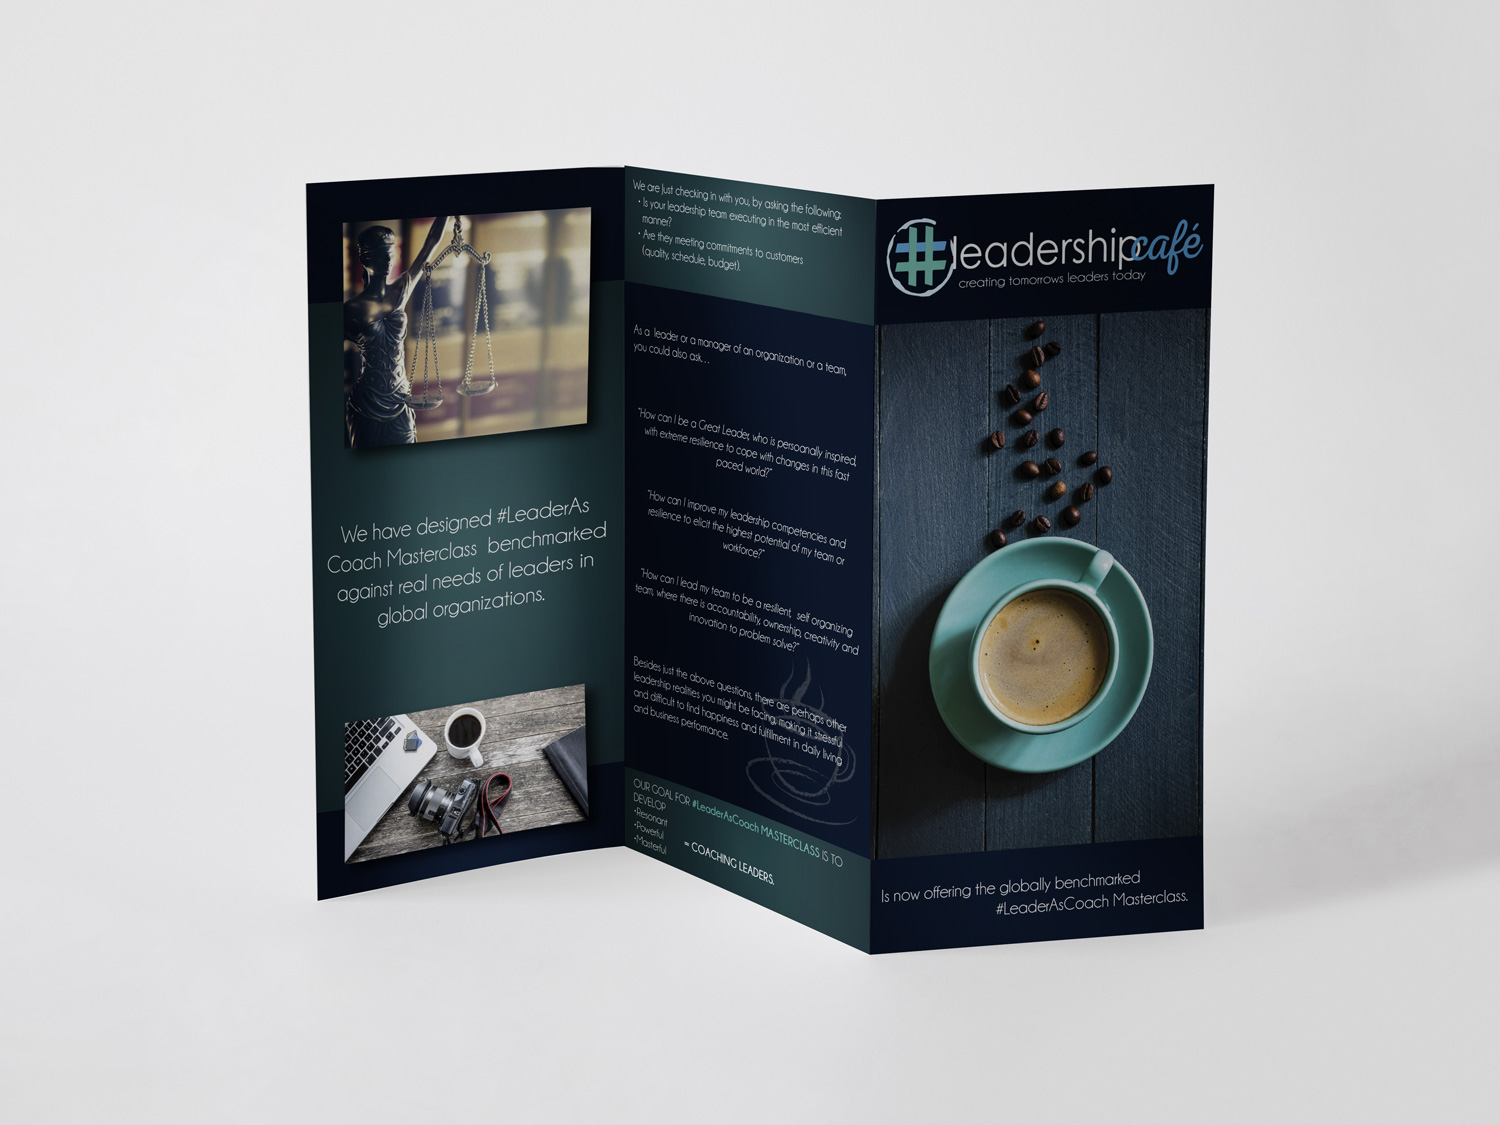 dart-digital-portfolio-tri-fold-brochure-leadership-cafe